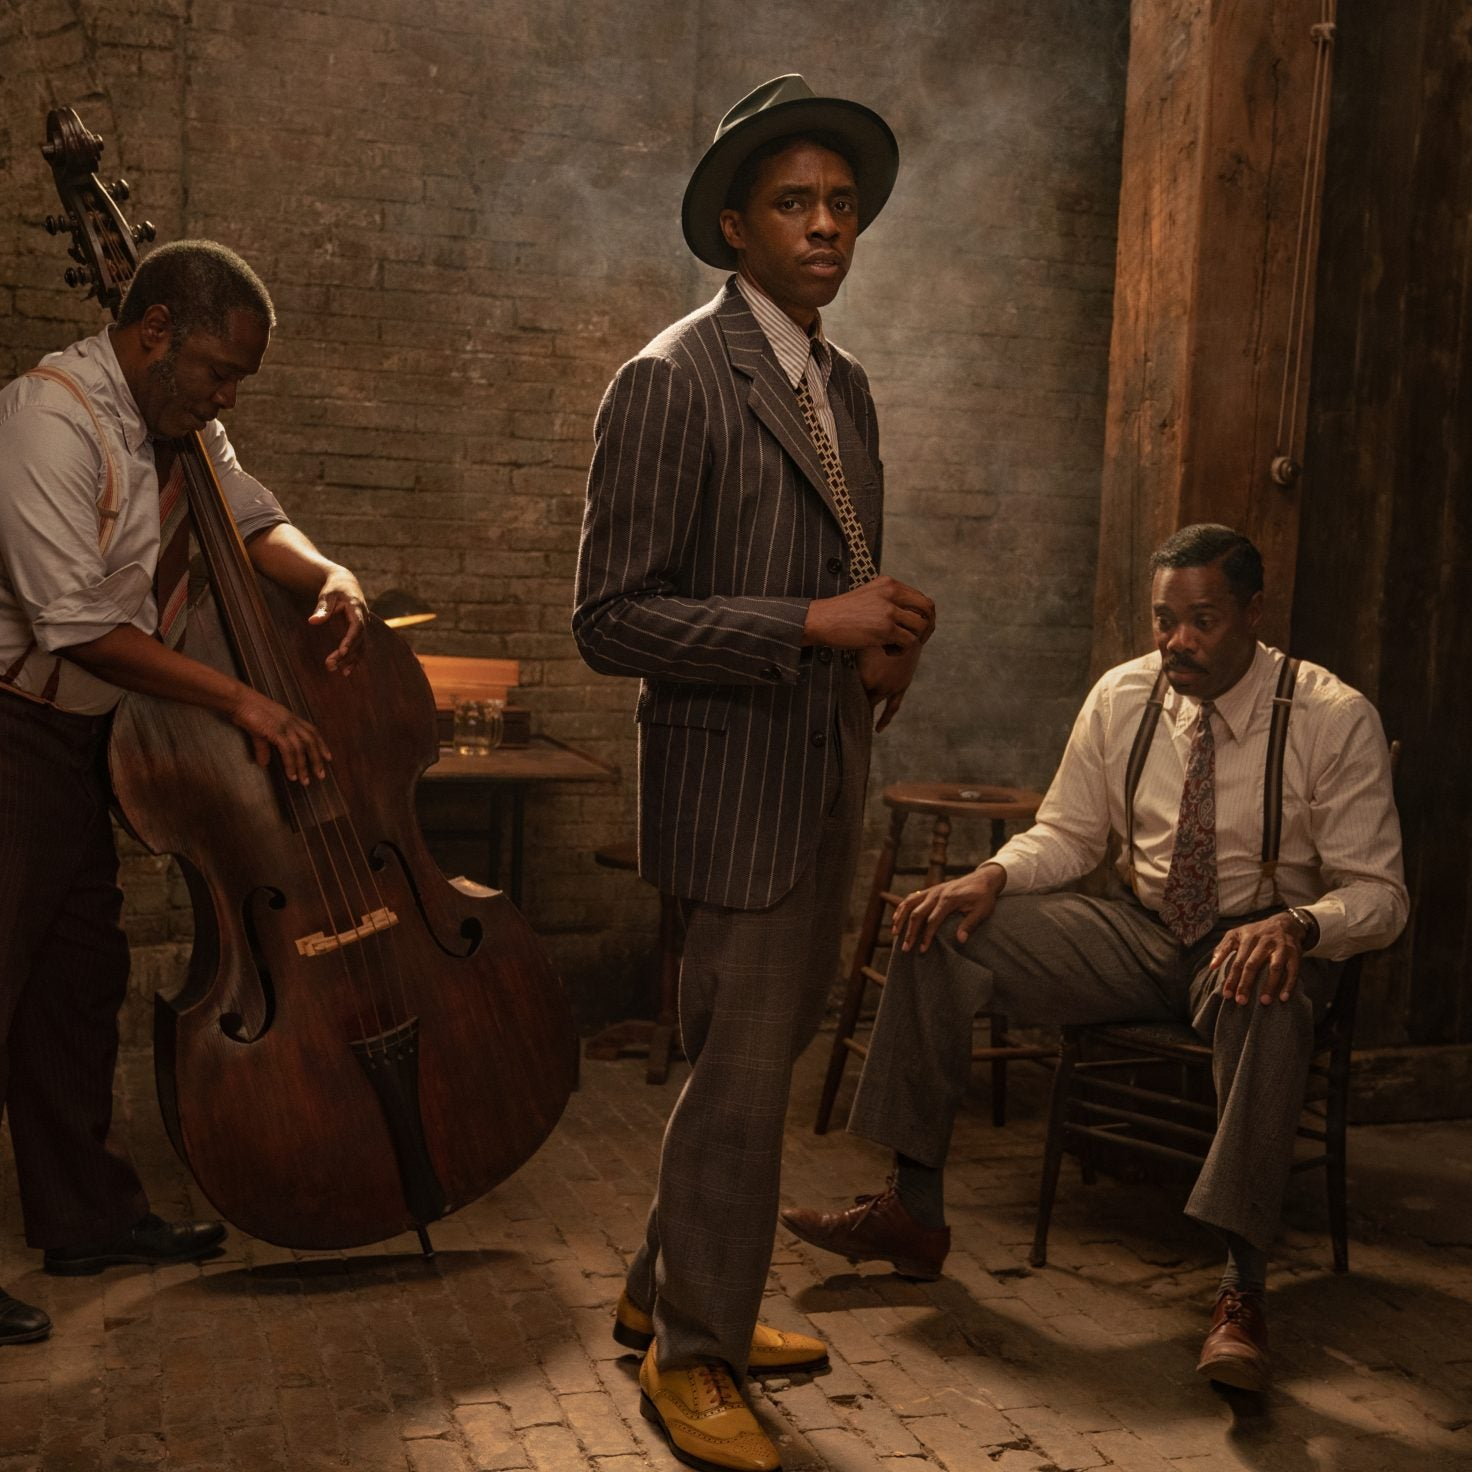 Netflix Releases First Look At Chadwick Boseman and Viola Davis In 'Ma Rainey's Black Bottom'